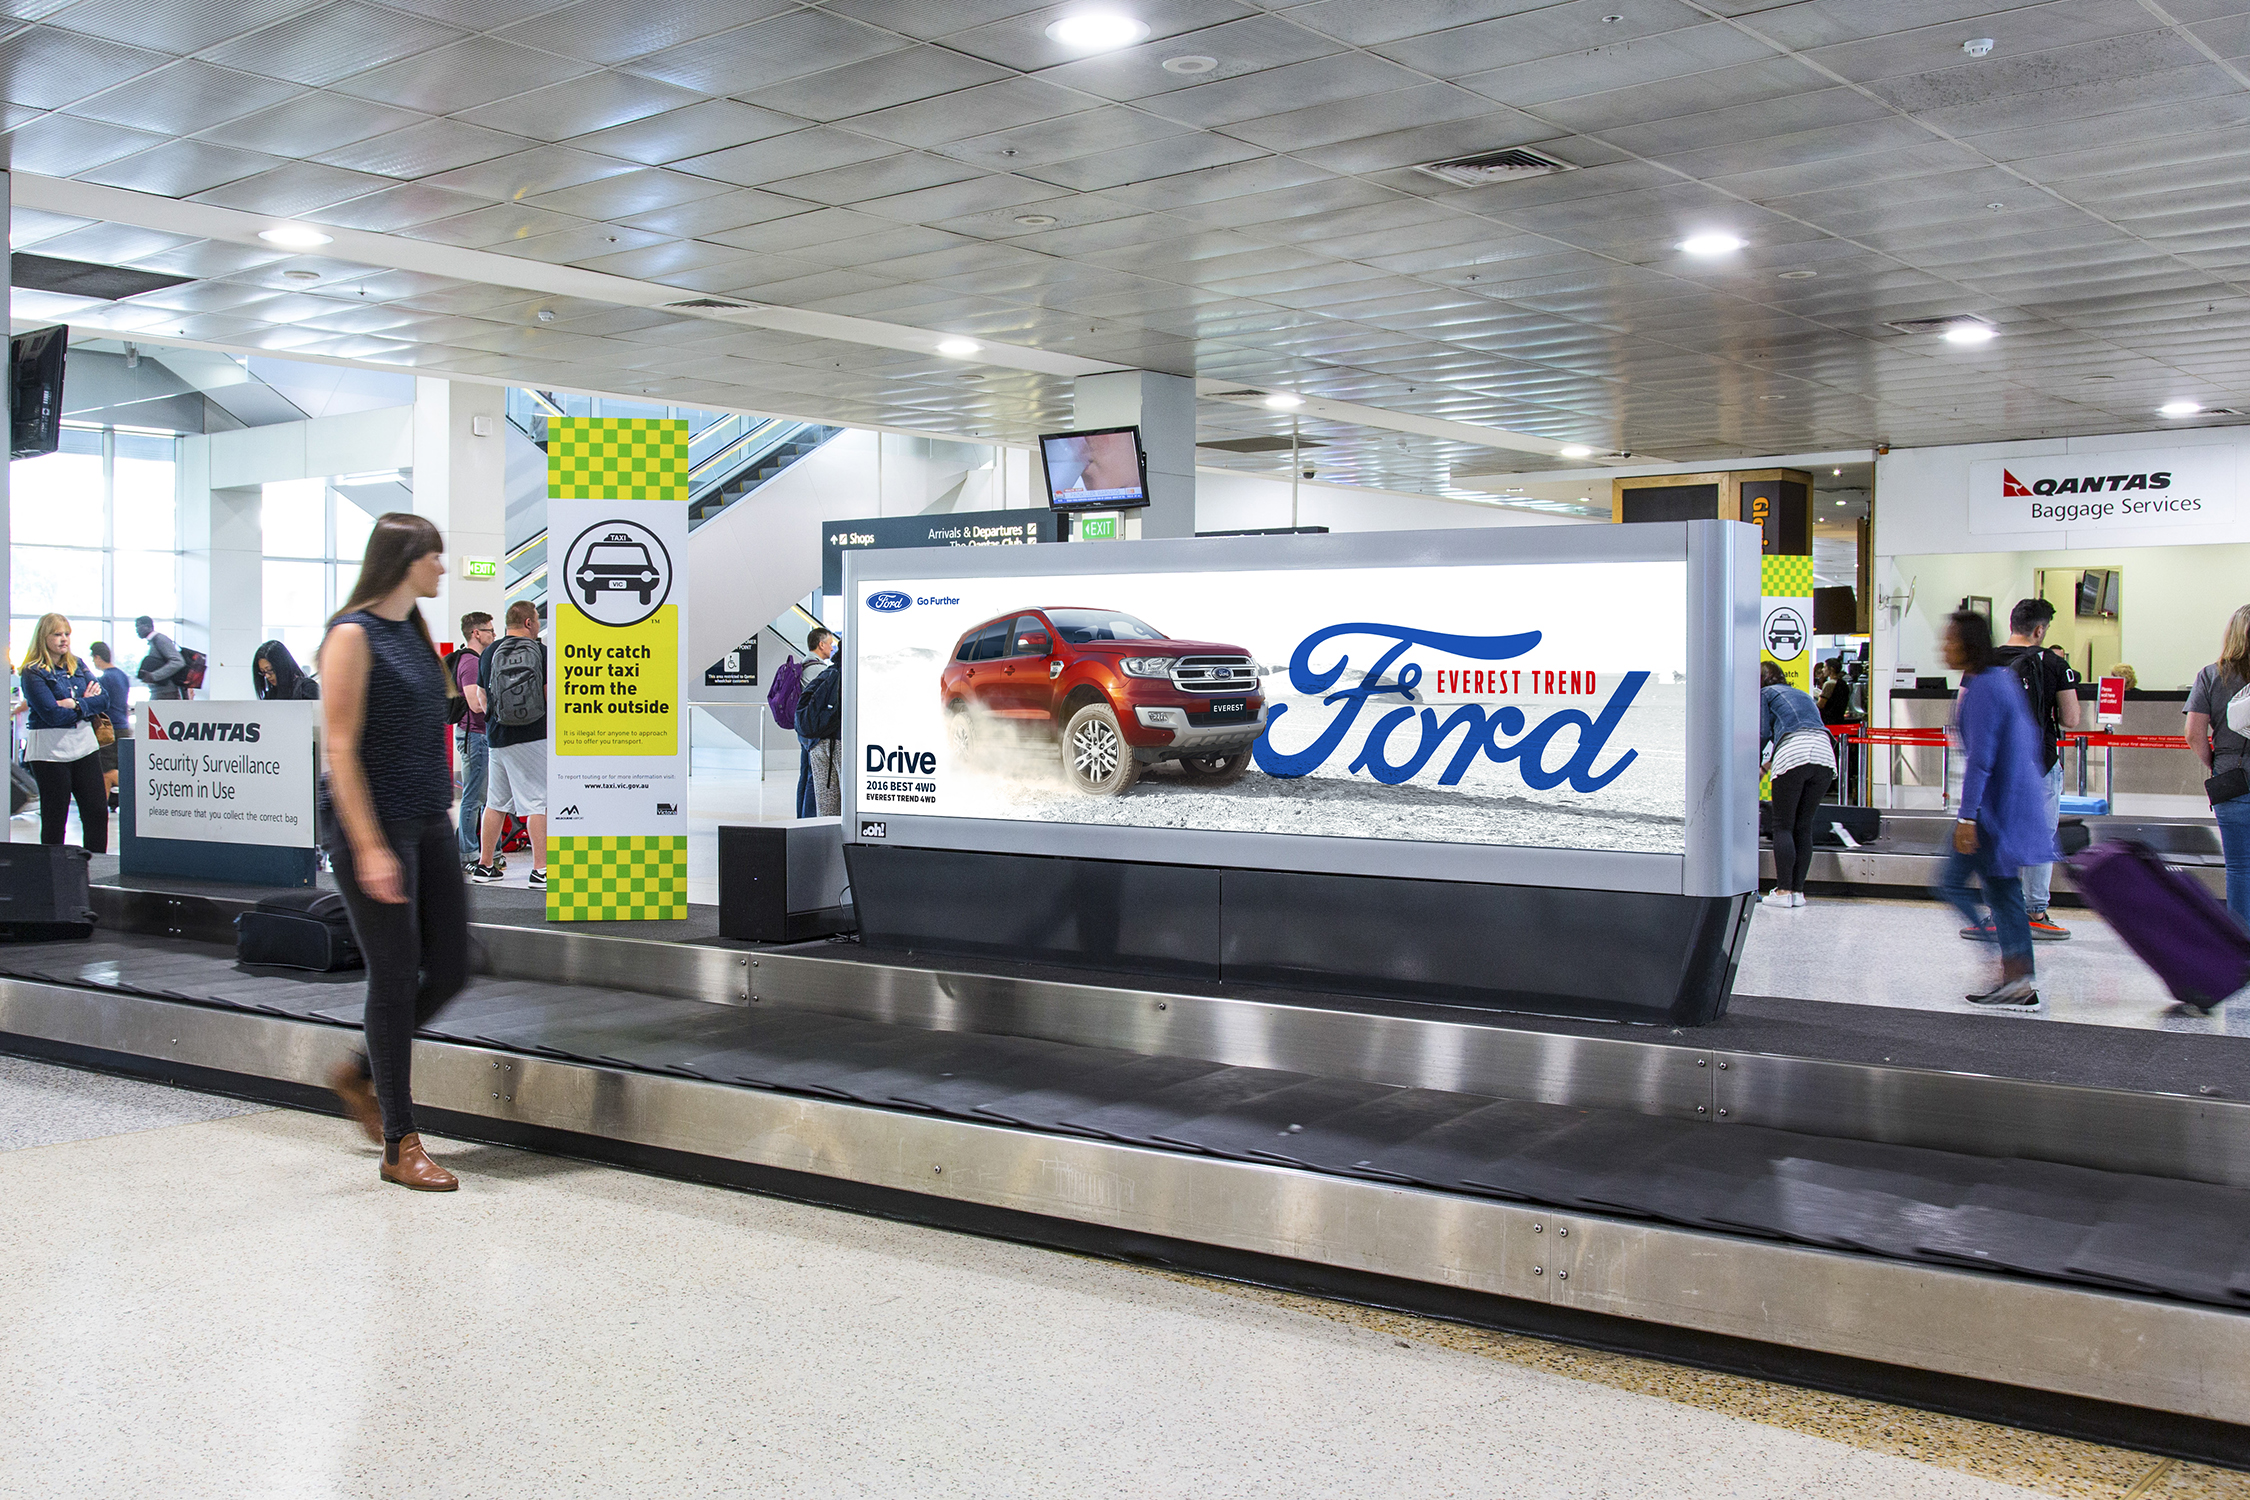 Ford_3067CCLD_MelbourneAirport_170317